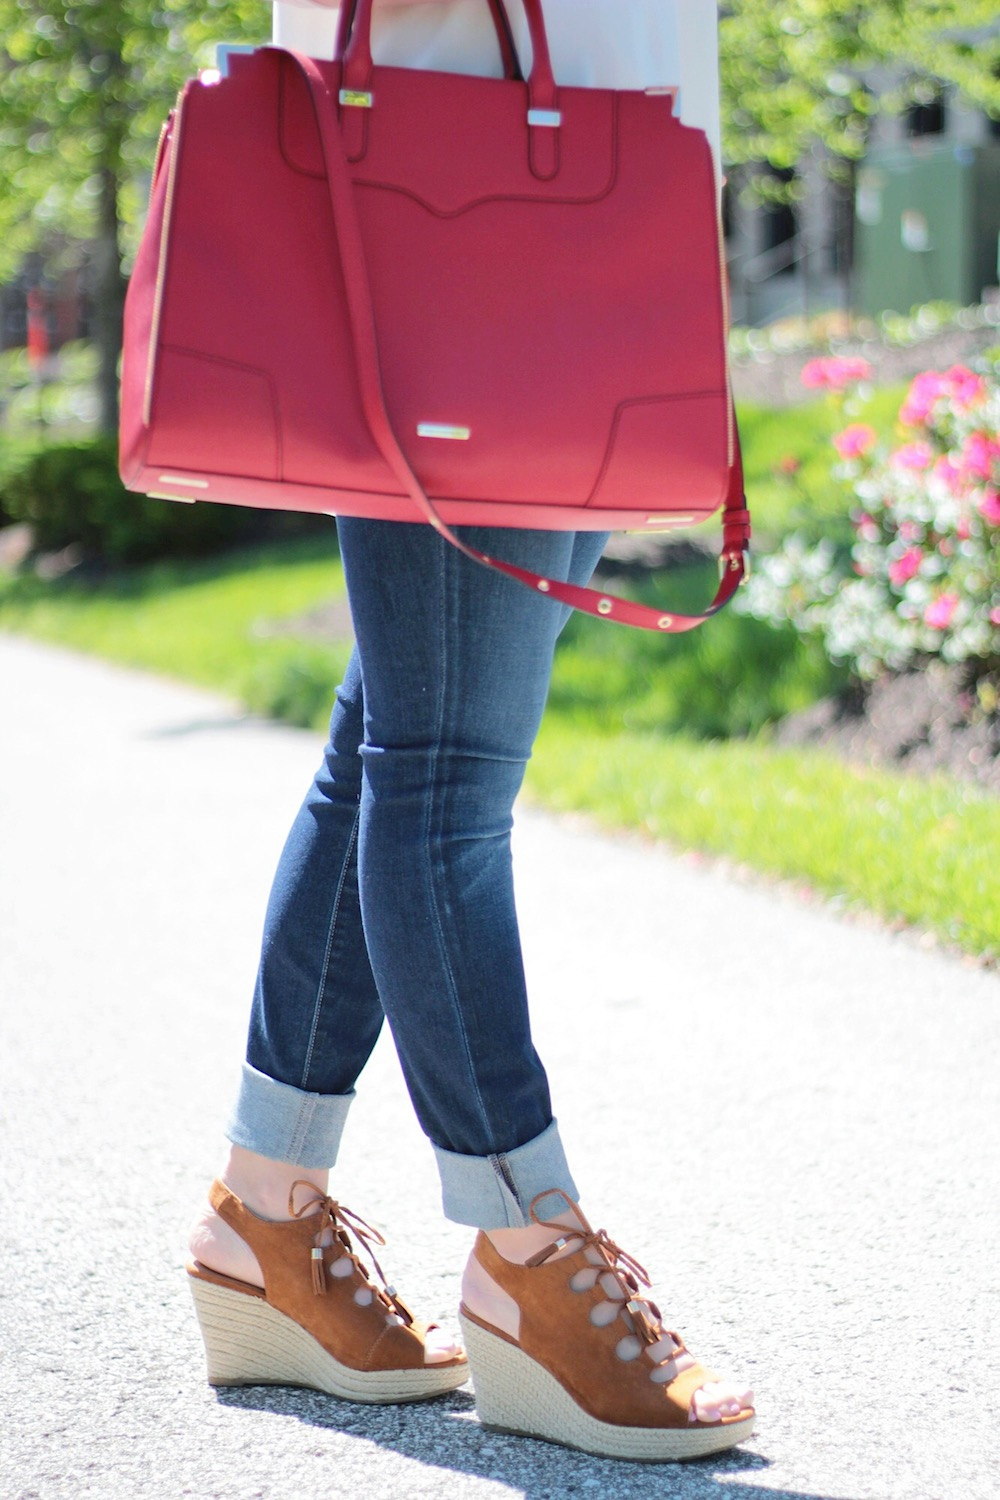 lace up wedges and rebecca minkoff bag